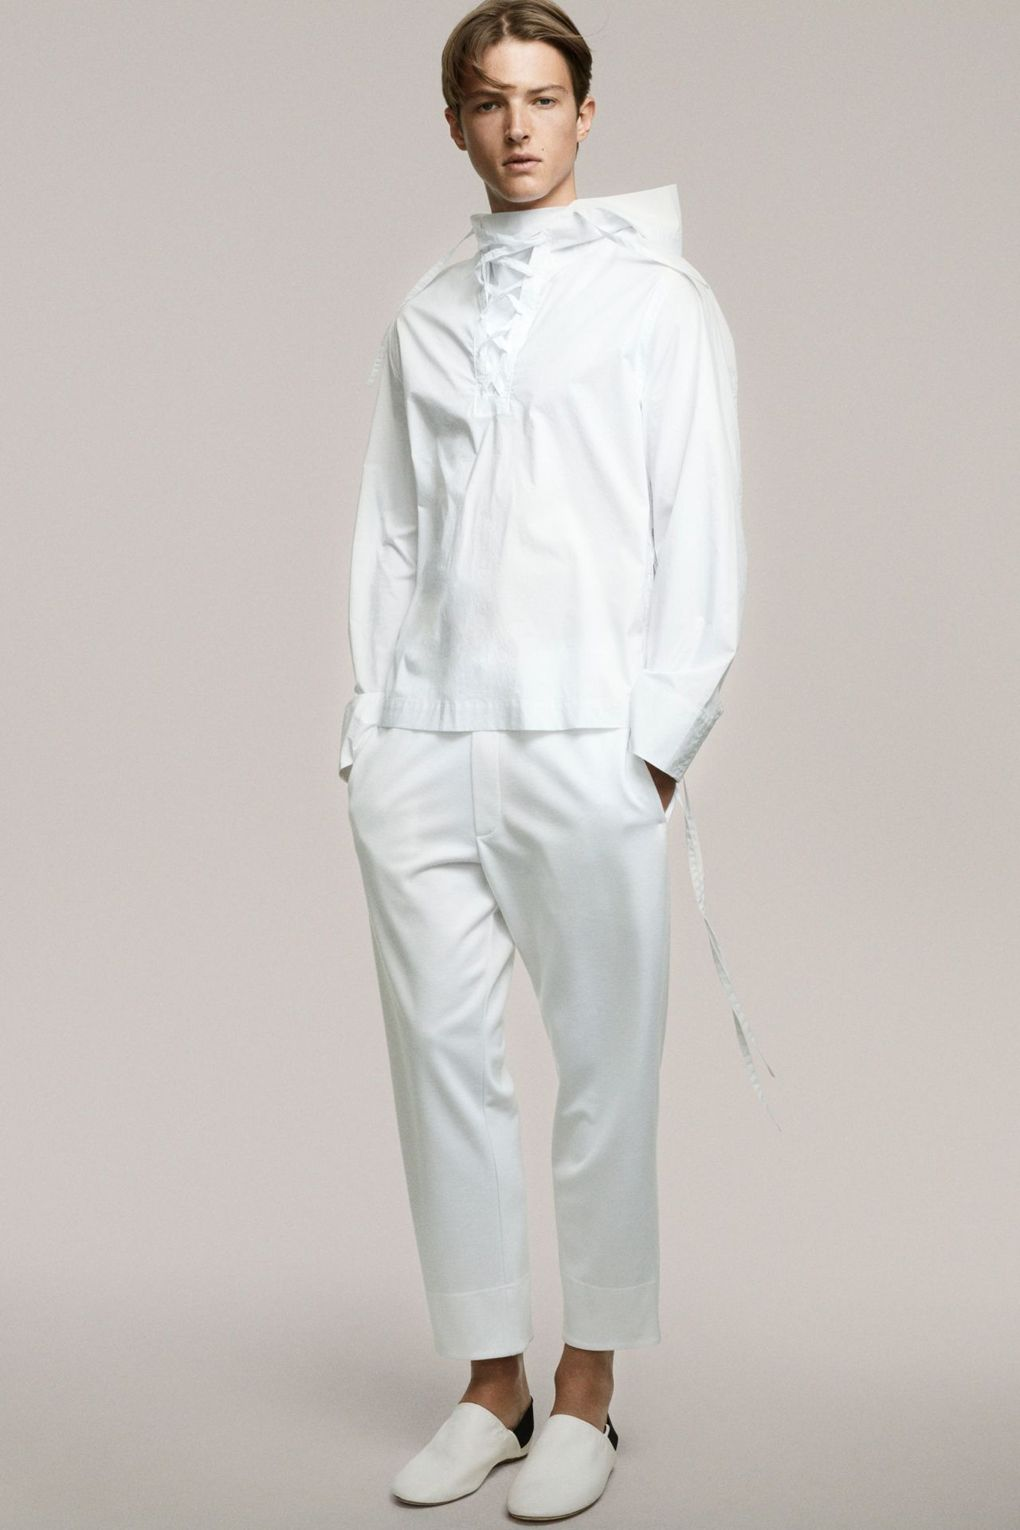 Just Things of Beauty. Athleisure White Suit SS17